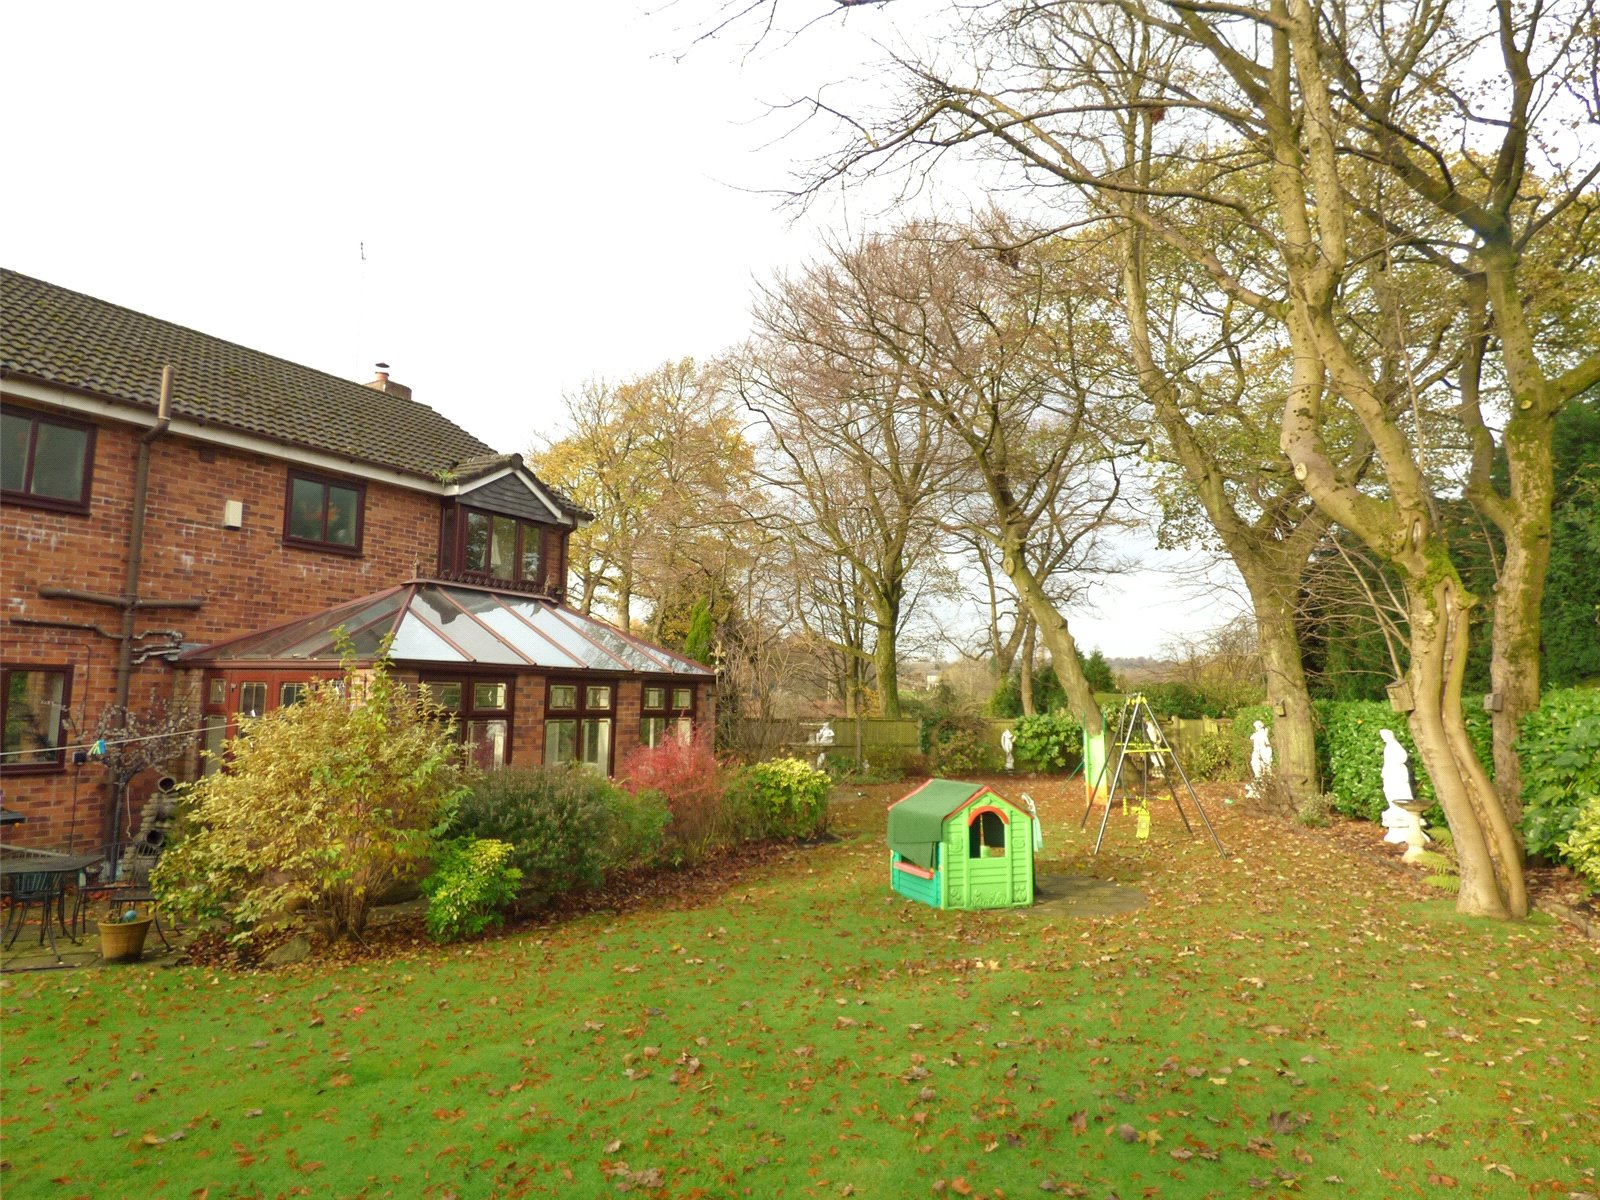 4 Bedrooms Detached House for sale in Maltby Court, Lees, Oldham, Greater Manchester, OL4